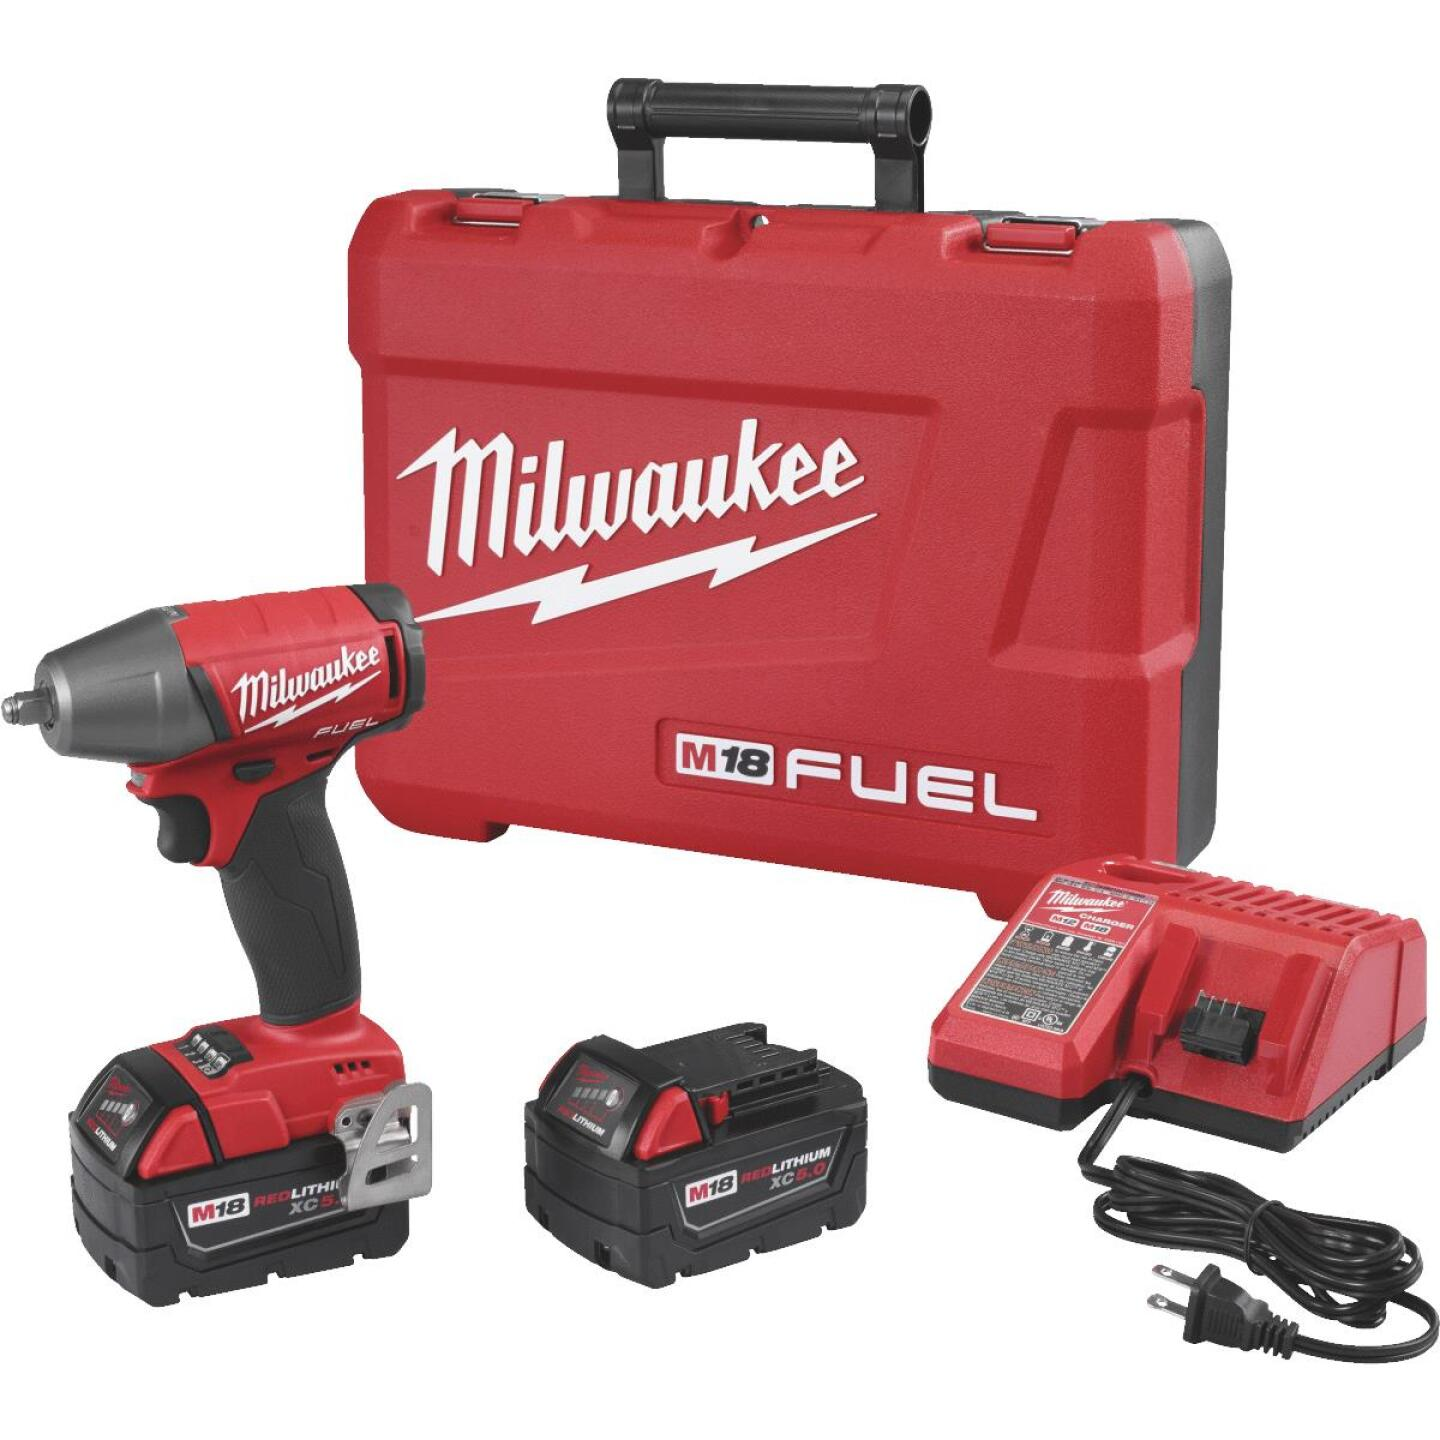 Milwaukee M18 FUEL 18 Volt Lithium-Ion Brushless 3/8 In. Compact Cordless Impact Wrench with Friction Ring Kit Image 1